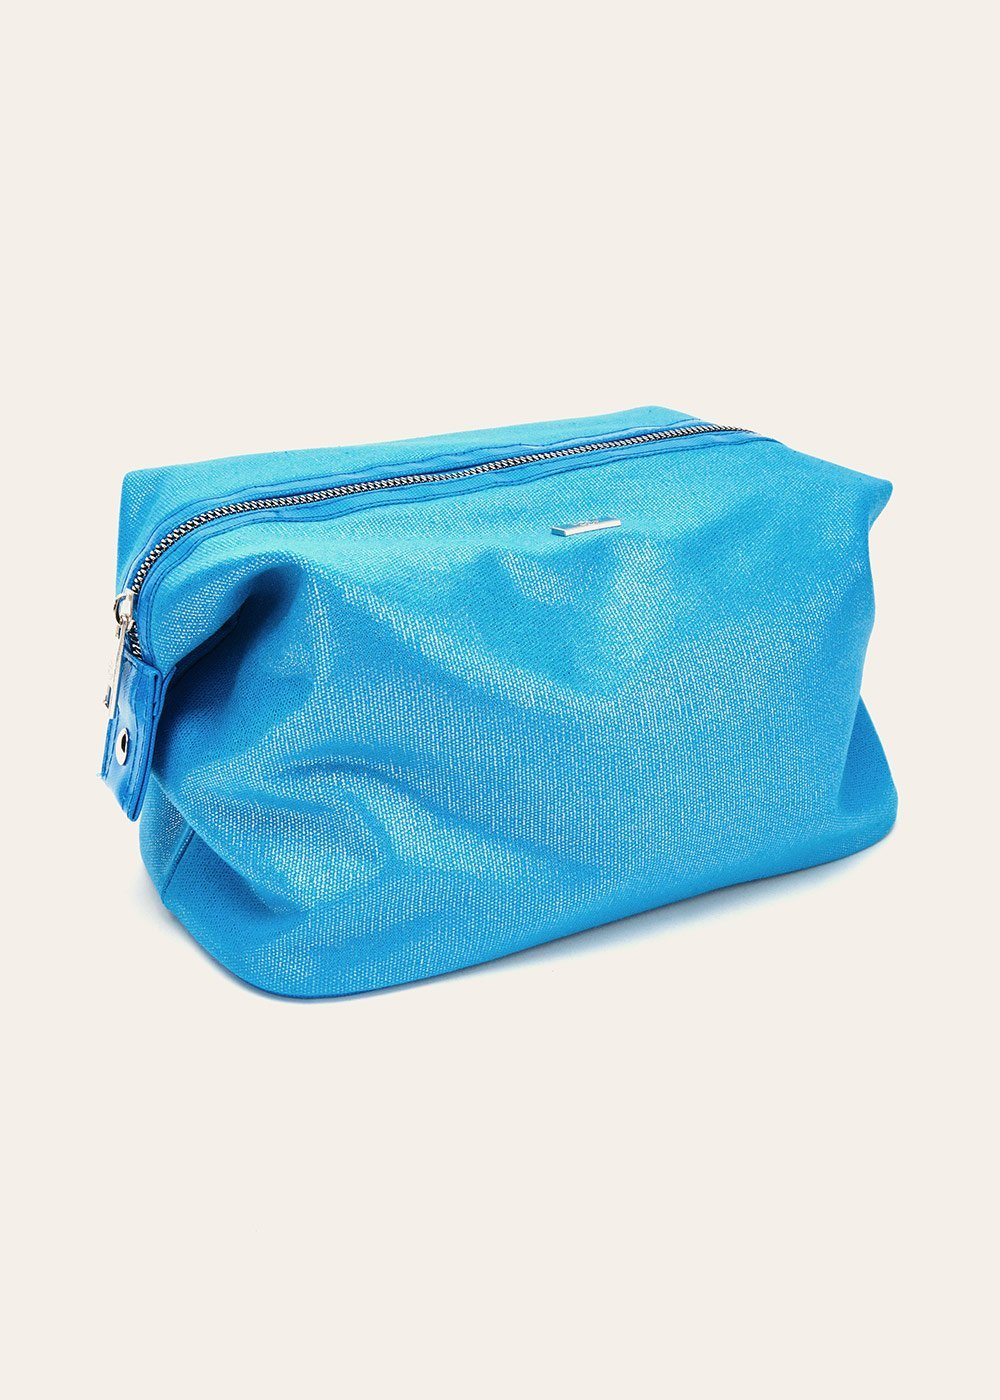 Benny laminated canvas vanity case - Turquoise - Woman